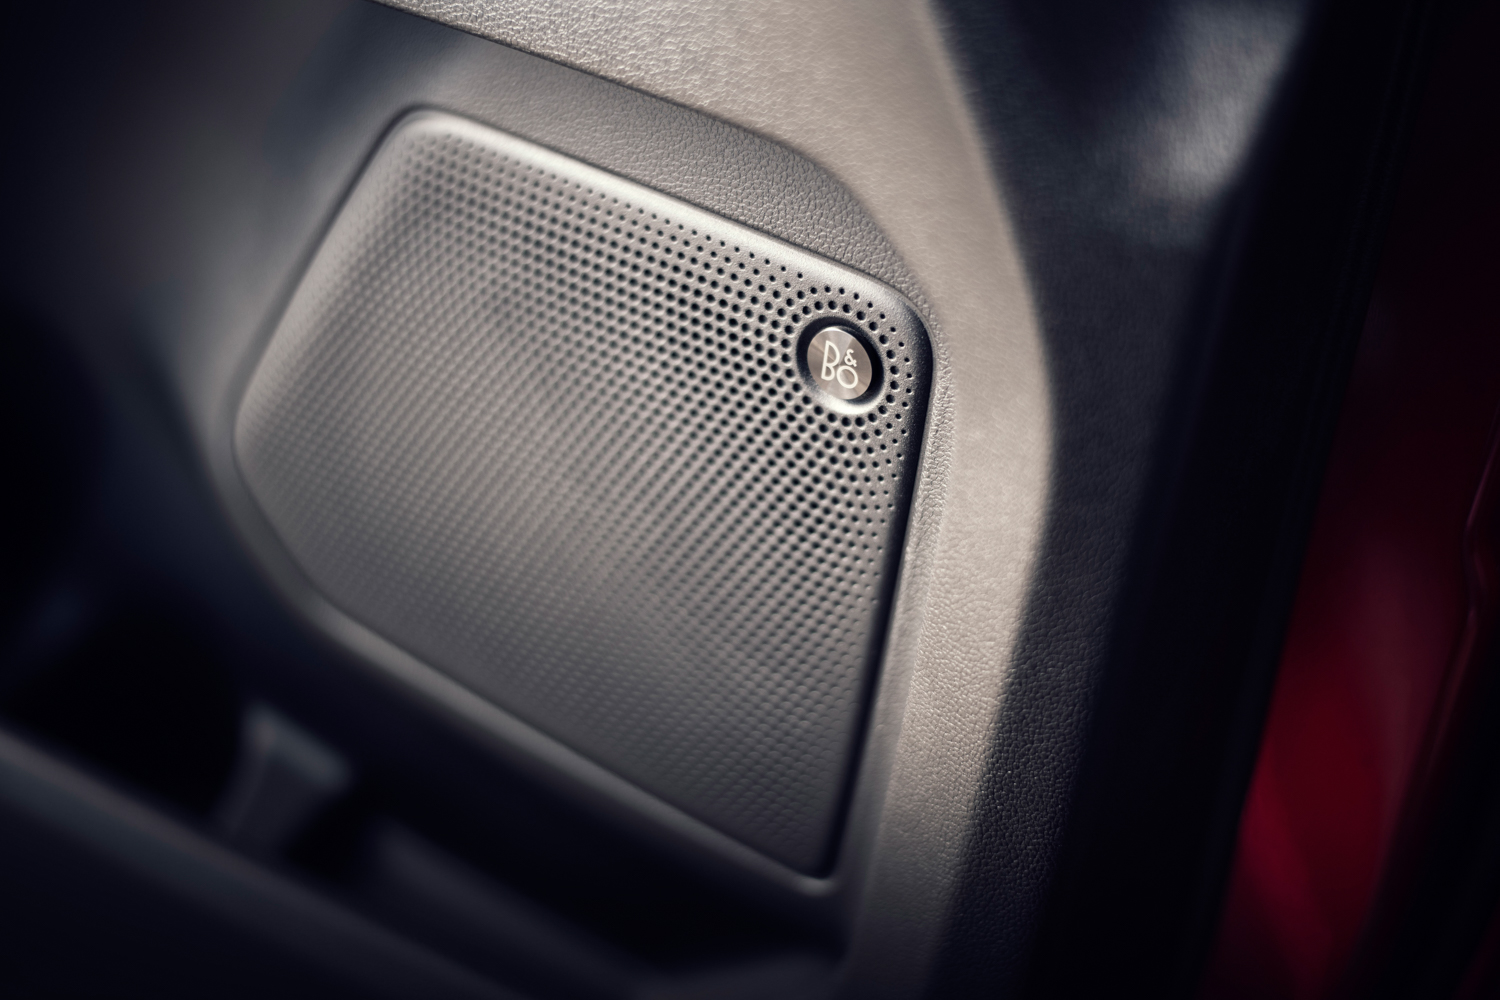 2020 Ford Escape speakers